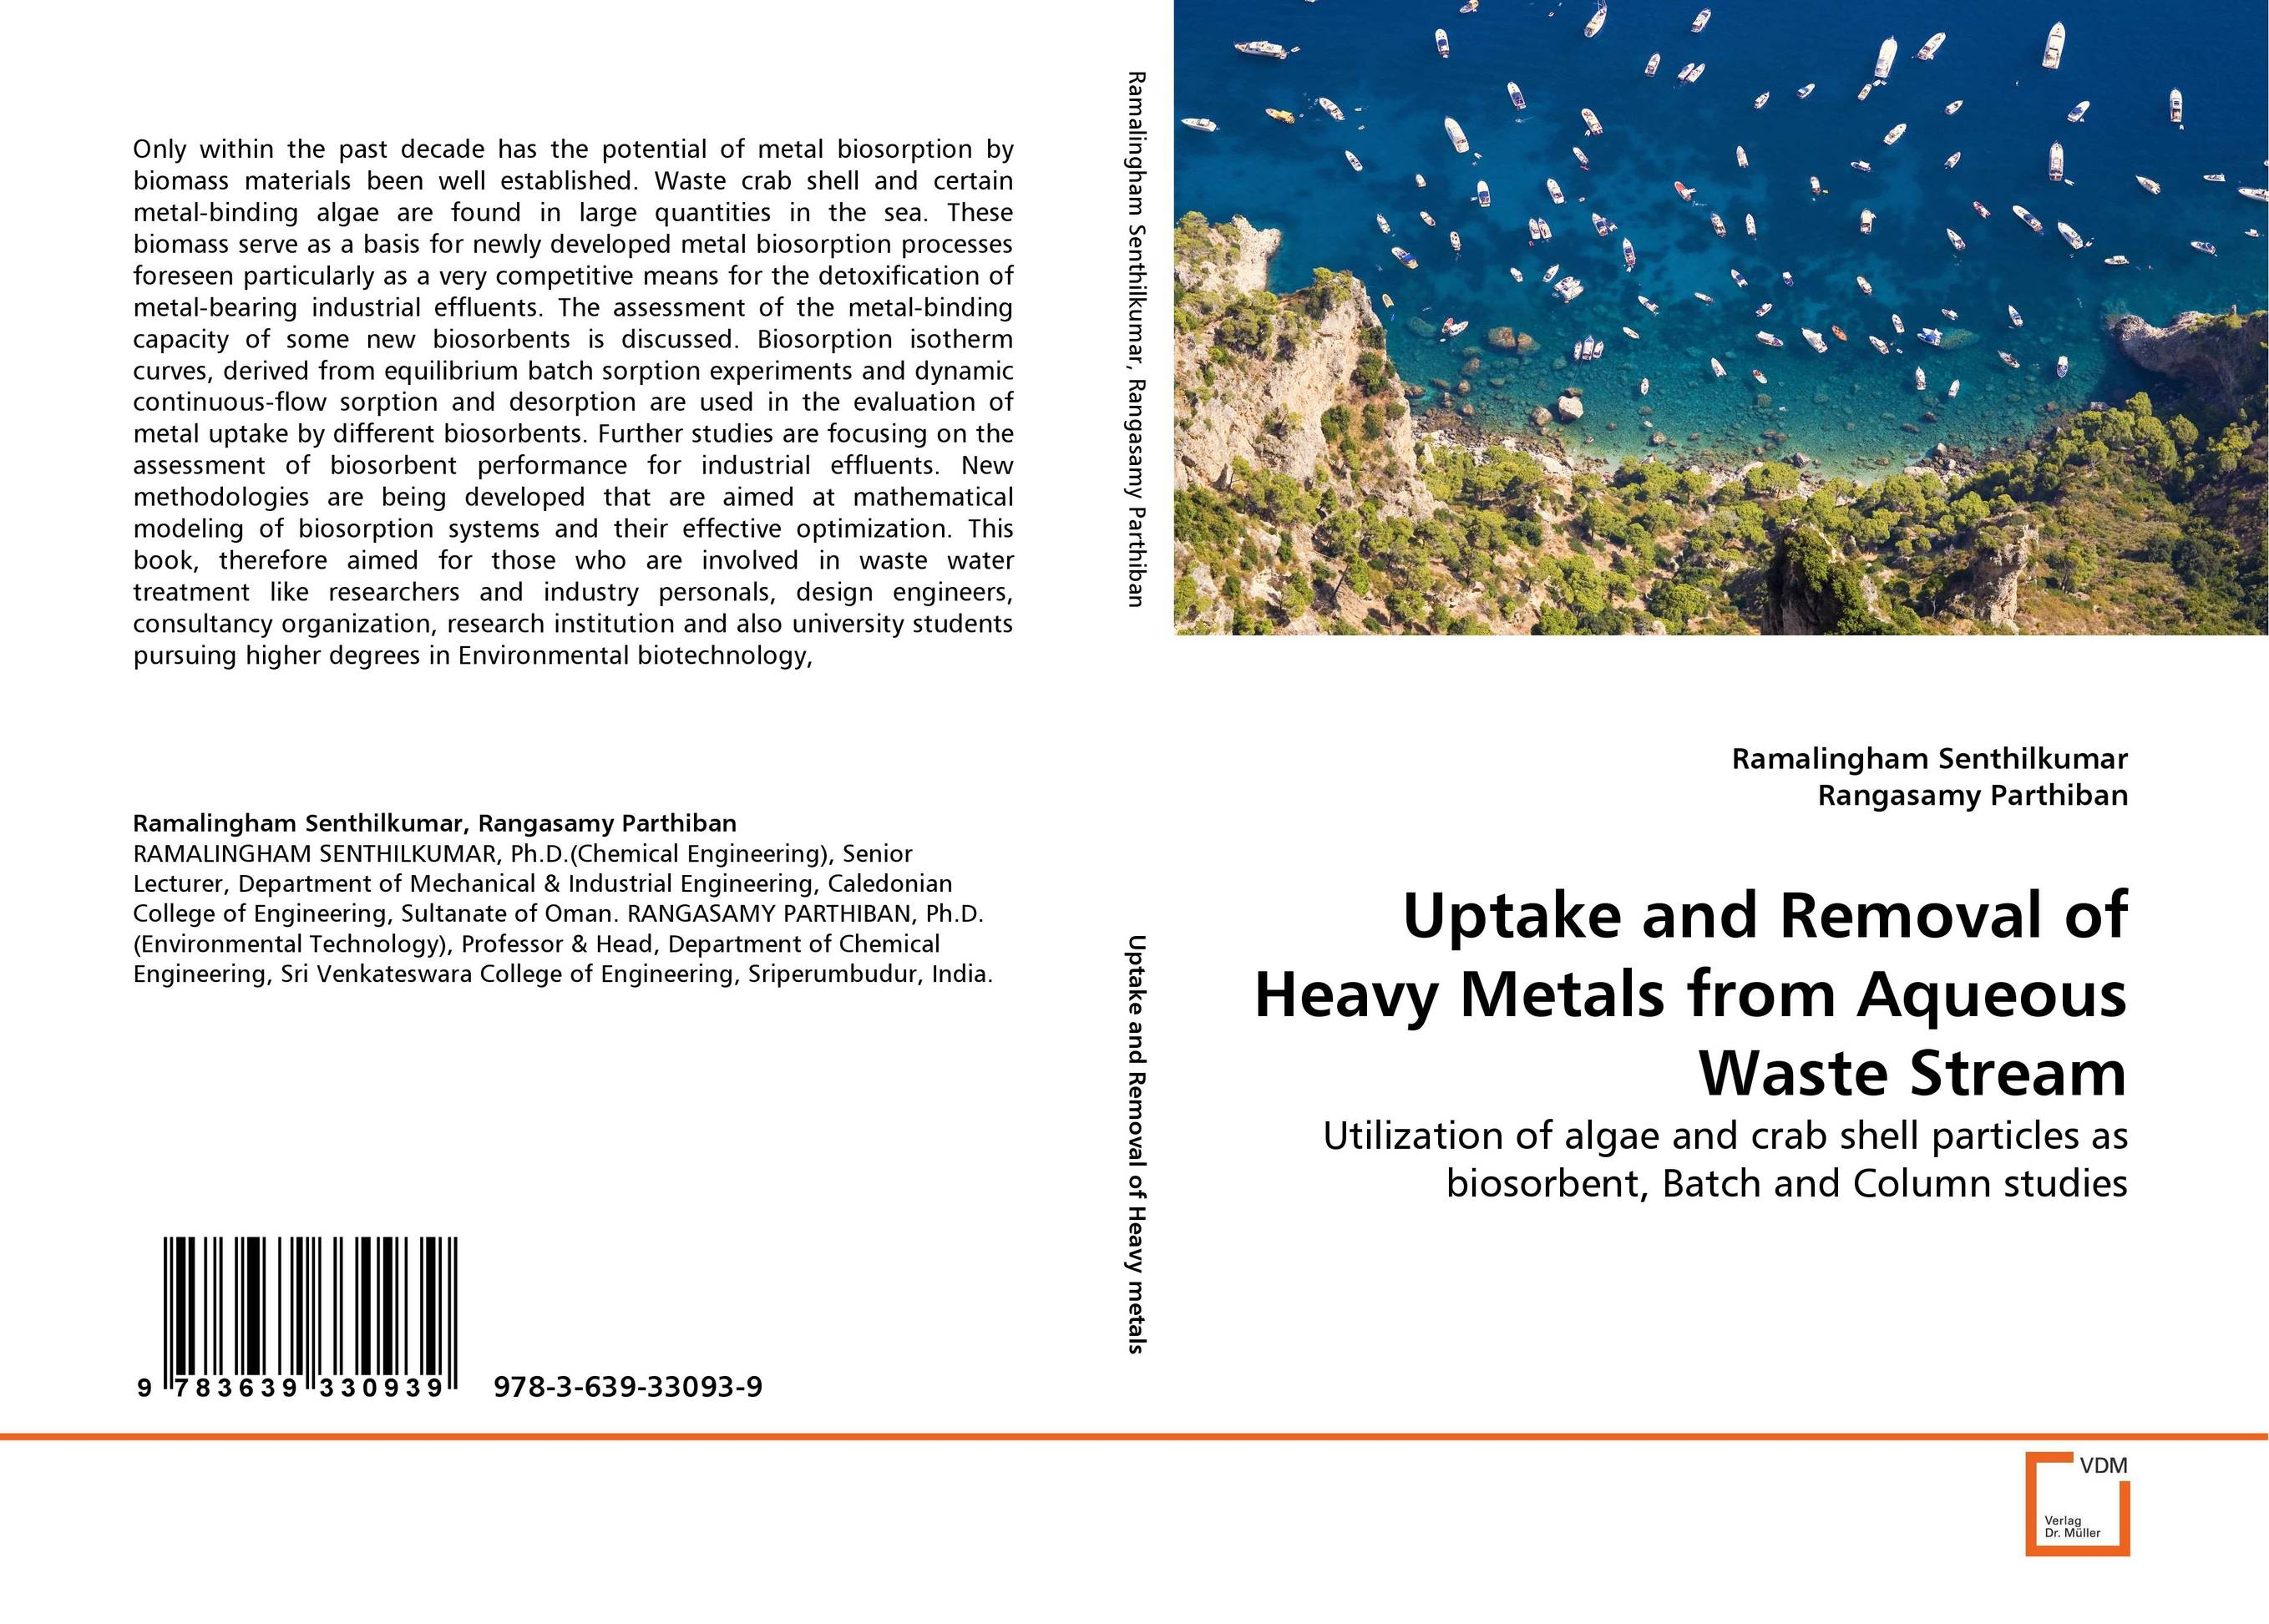 Uptake and Removal of Heavy Metals from Aqueous Waste Stream marwan a ibrahim effect of heavy metals on haematological and testicular functions